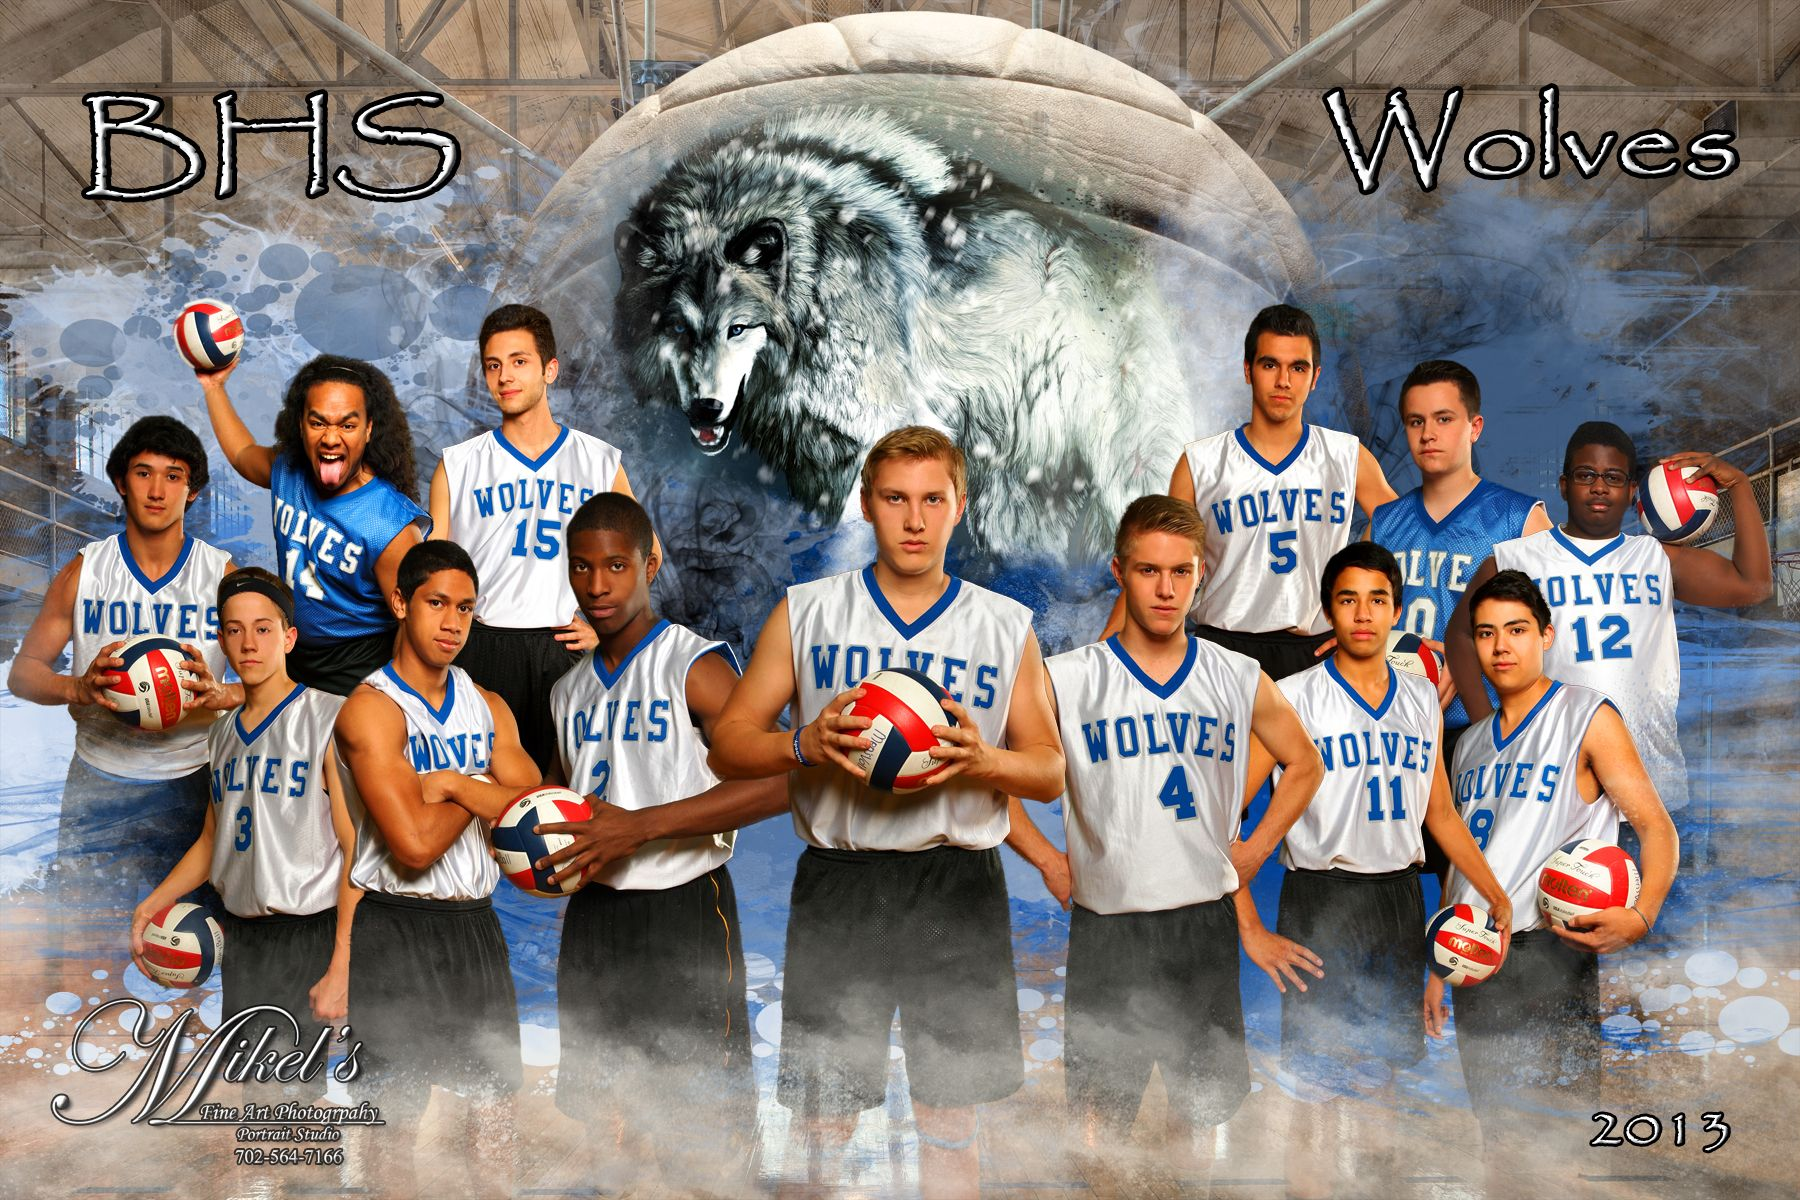 Bhs Boys Volleyball Mikel S Photography Design Www Mikelsphotography Com 702 564 7166 Volleyball Photos Volleyball Pictures Volleyball Poses